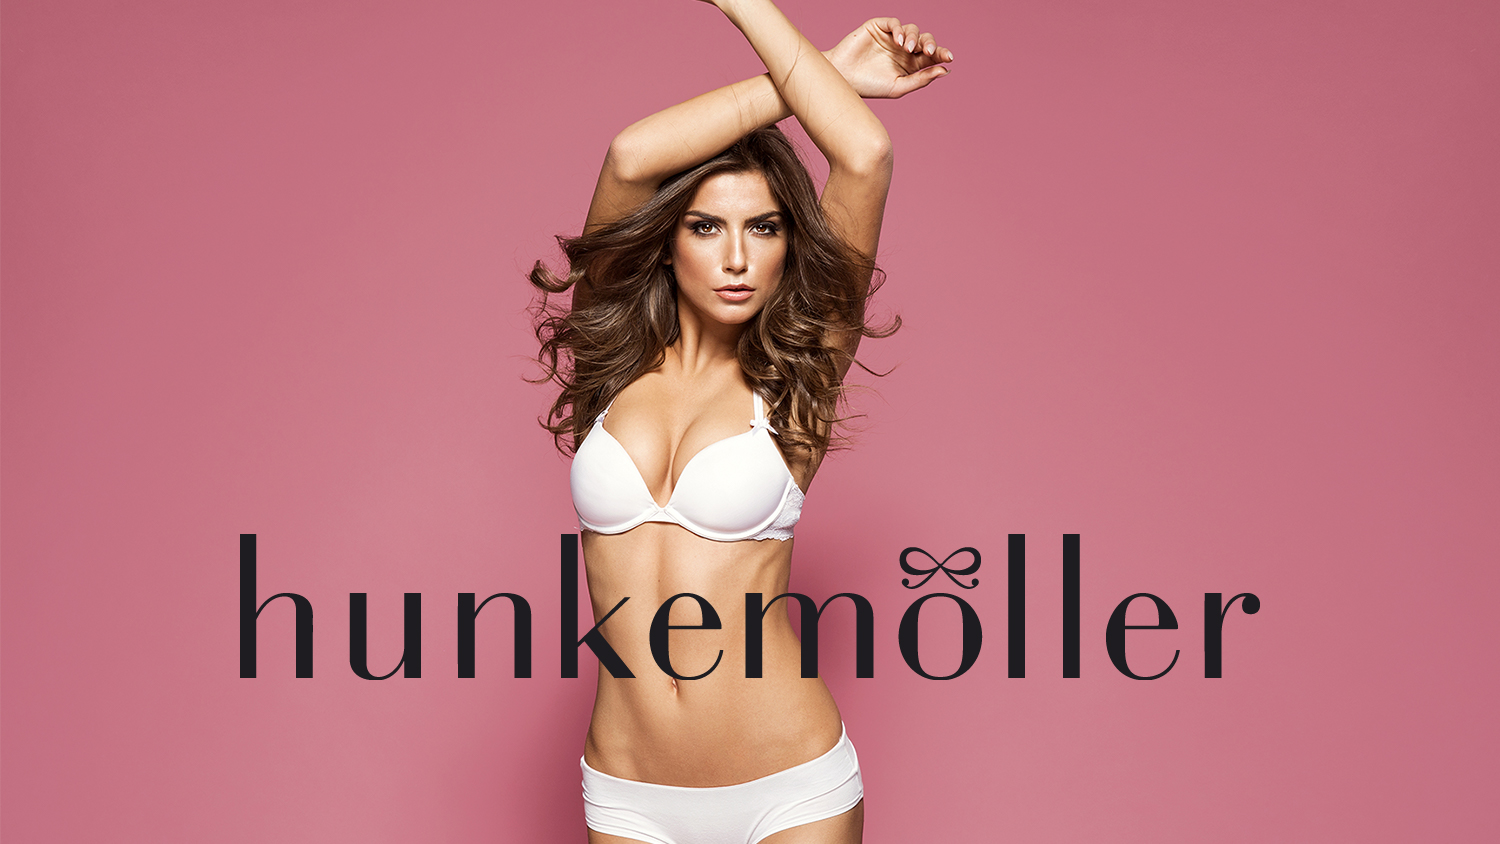 Hunkemöller: Exclusive offer with 16% discount starting from 30 €